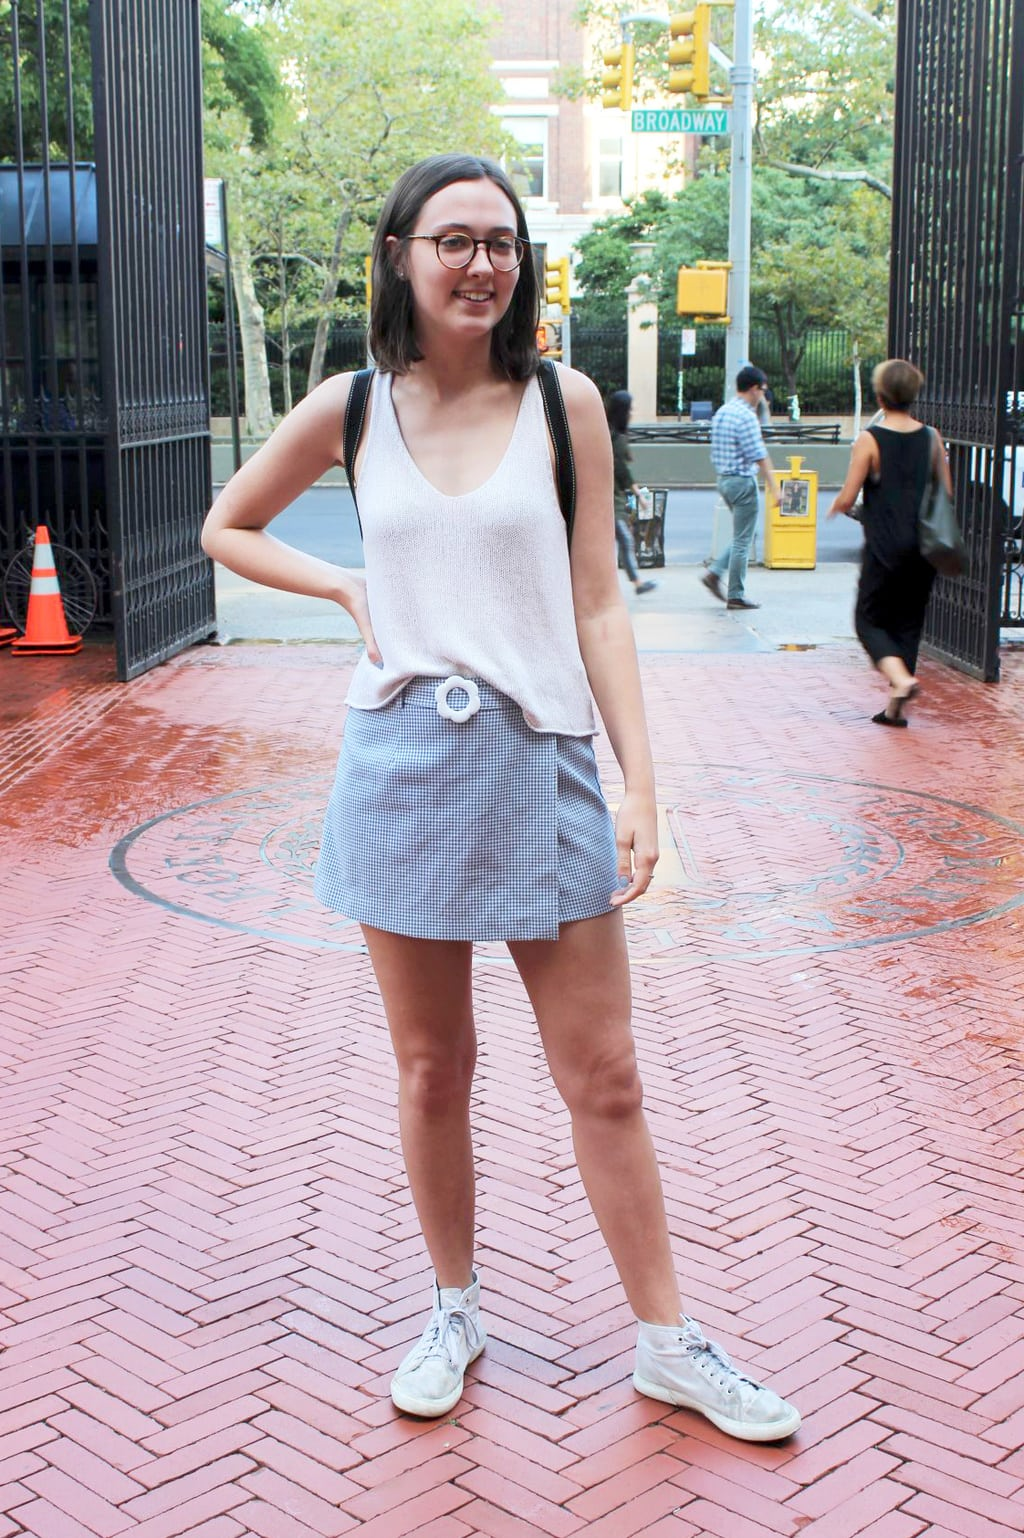 Barnard College street style: Student Julia wears a pink tank top, gingham skirt, and classic high top sneakers